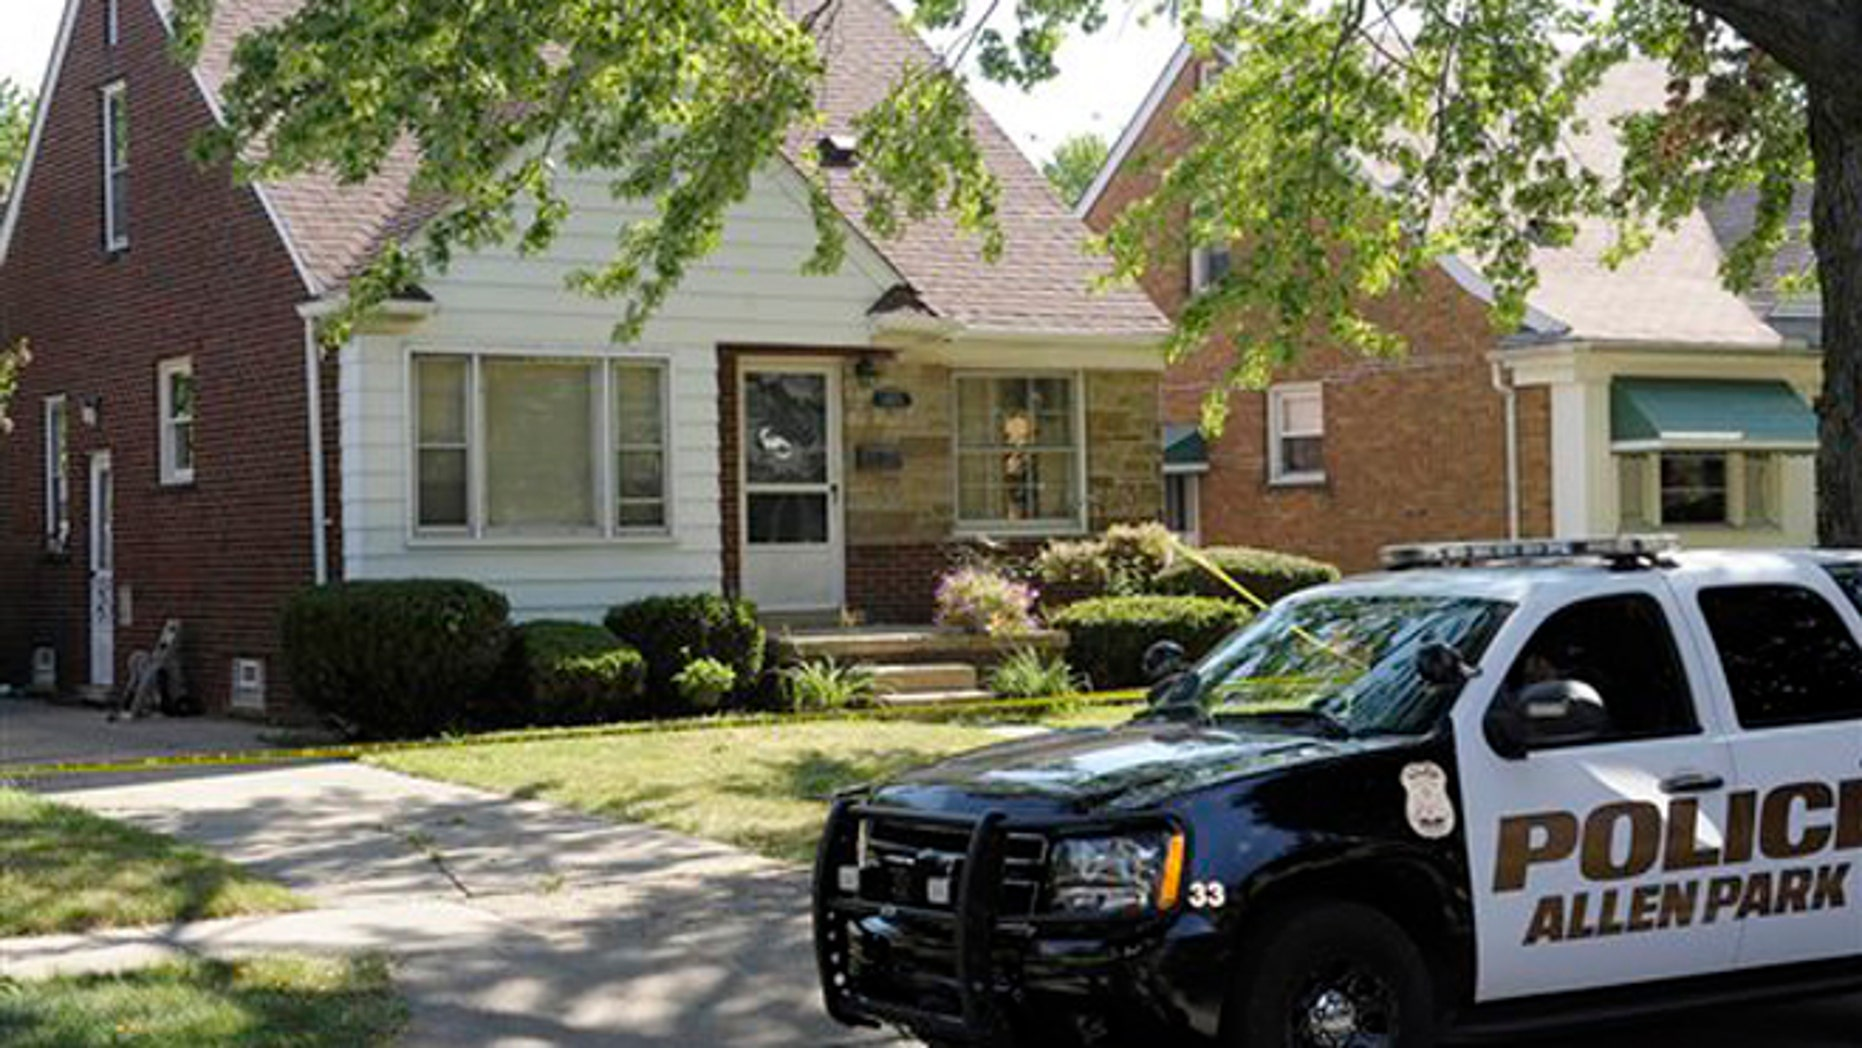 July 20, 2012: An Allen Park Police wait outside an Allen Park, Mich., home.